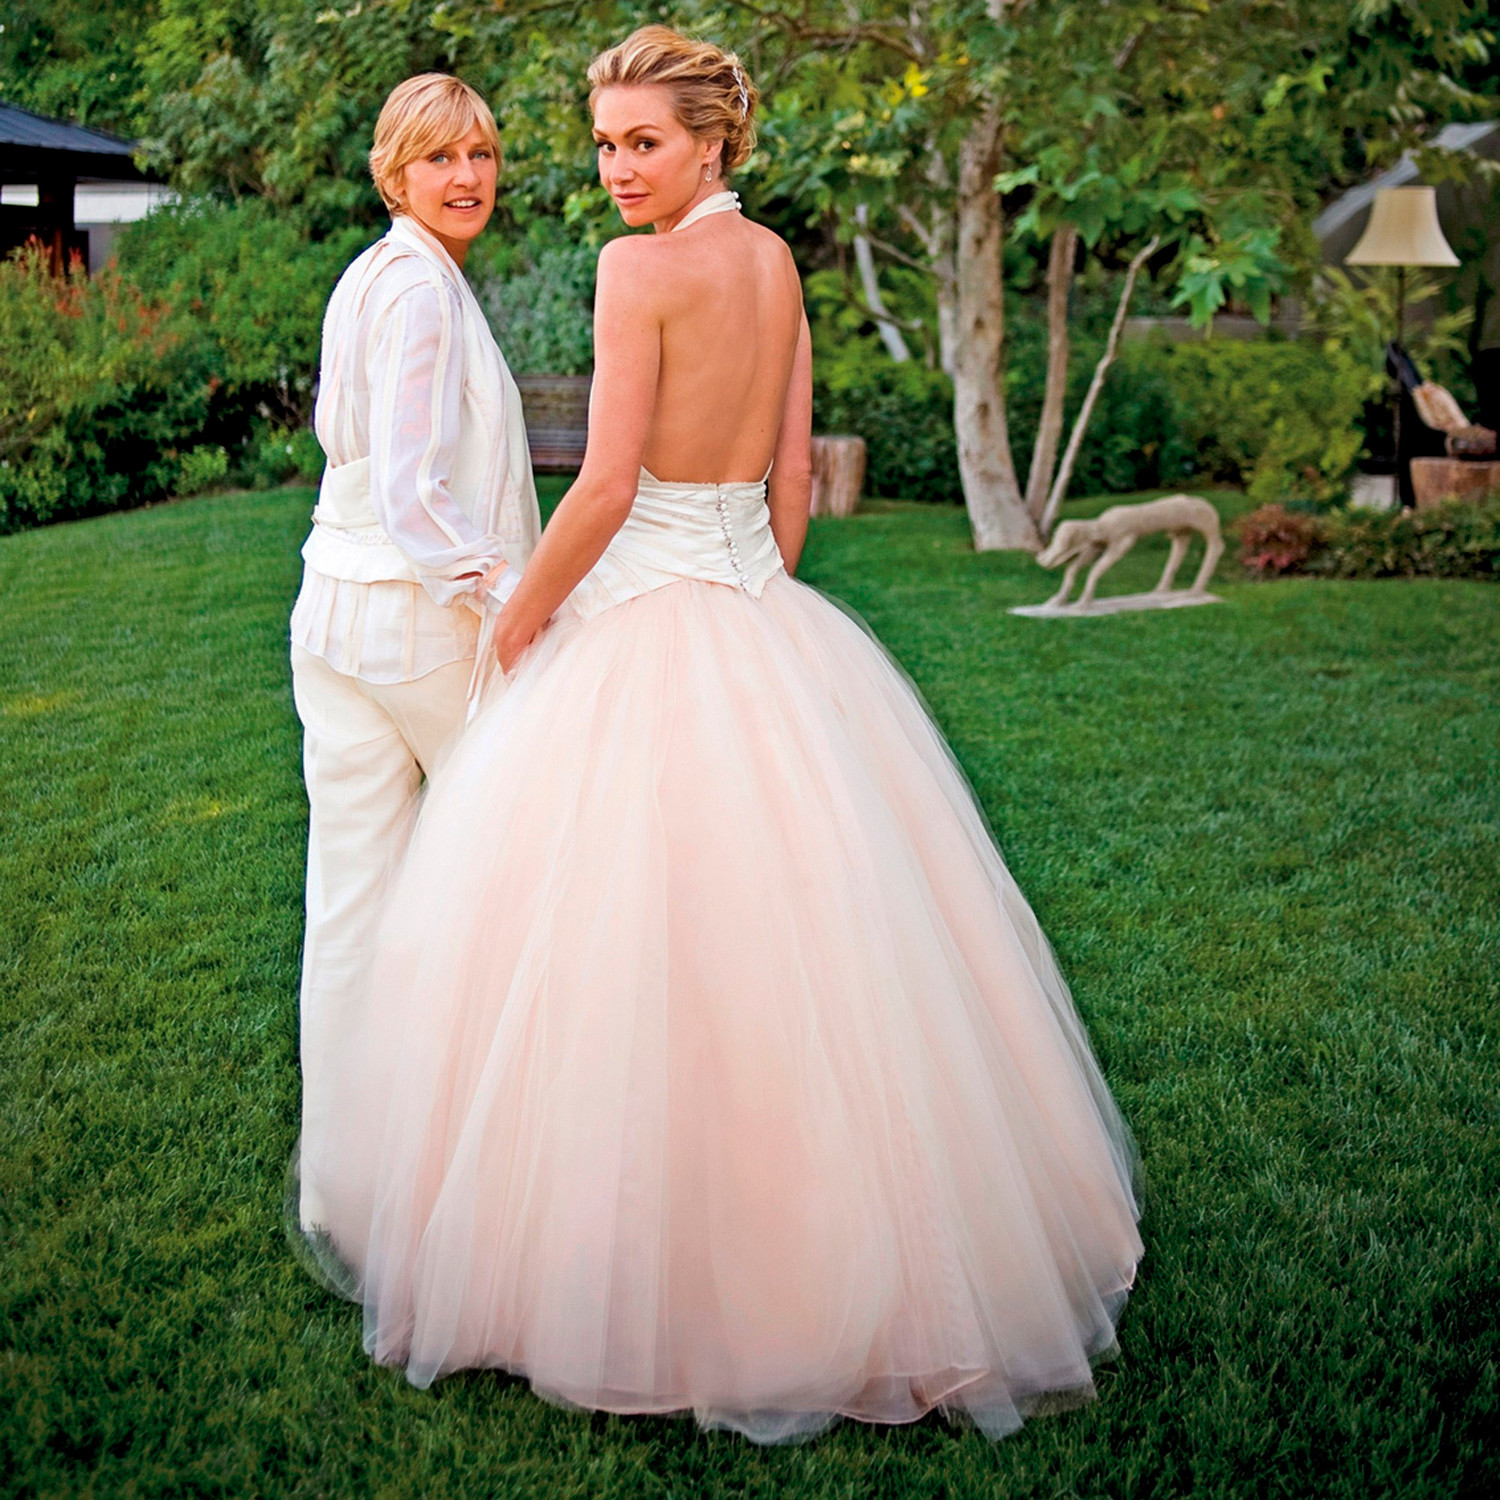 Honeymoon Clothes For Bride: Celebrity Brides Who Wore Pink Wedding Dresses